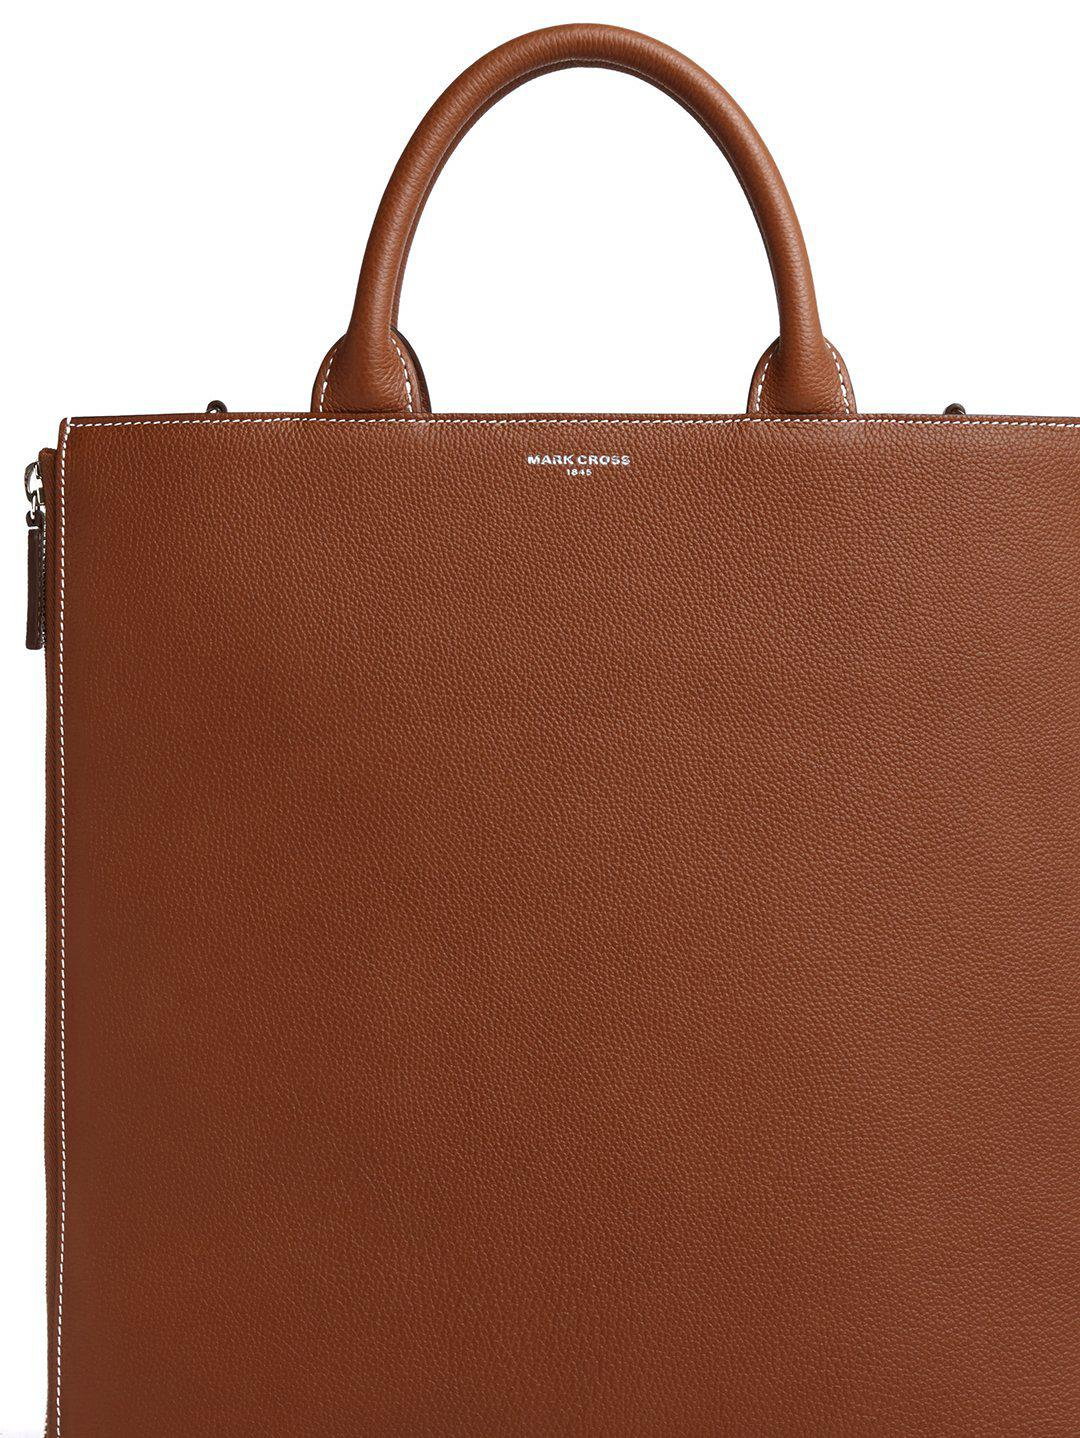 Sidney Leather Tote Bag 1